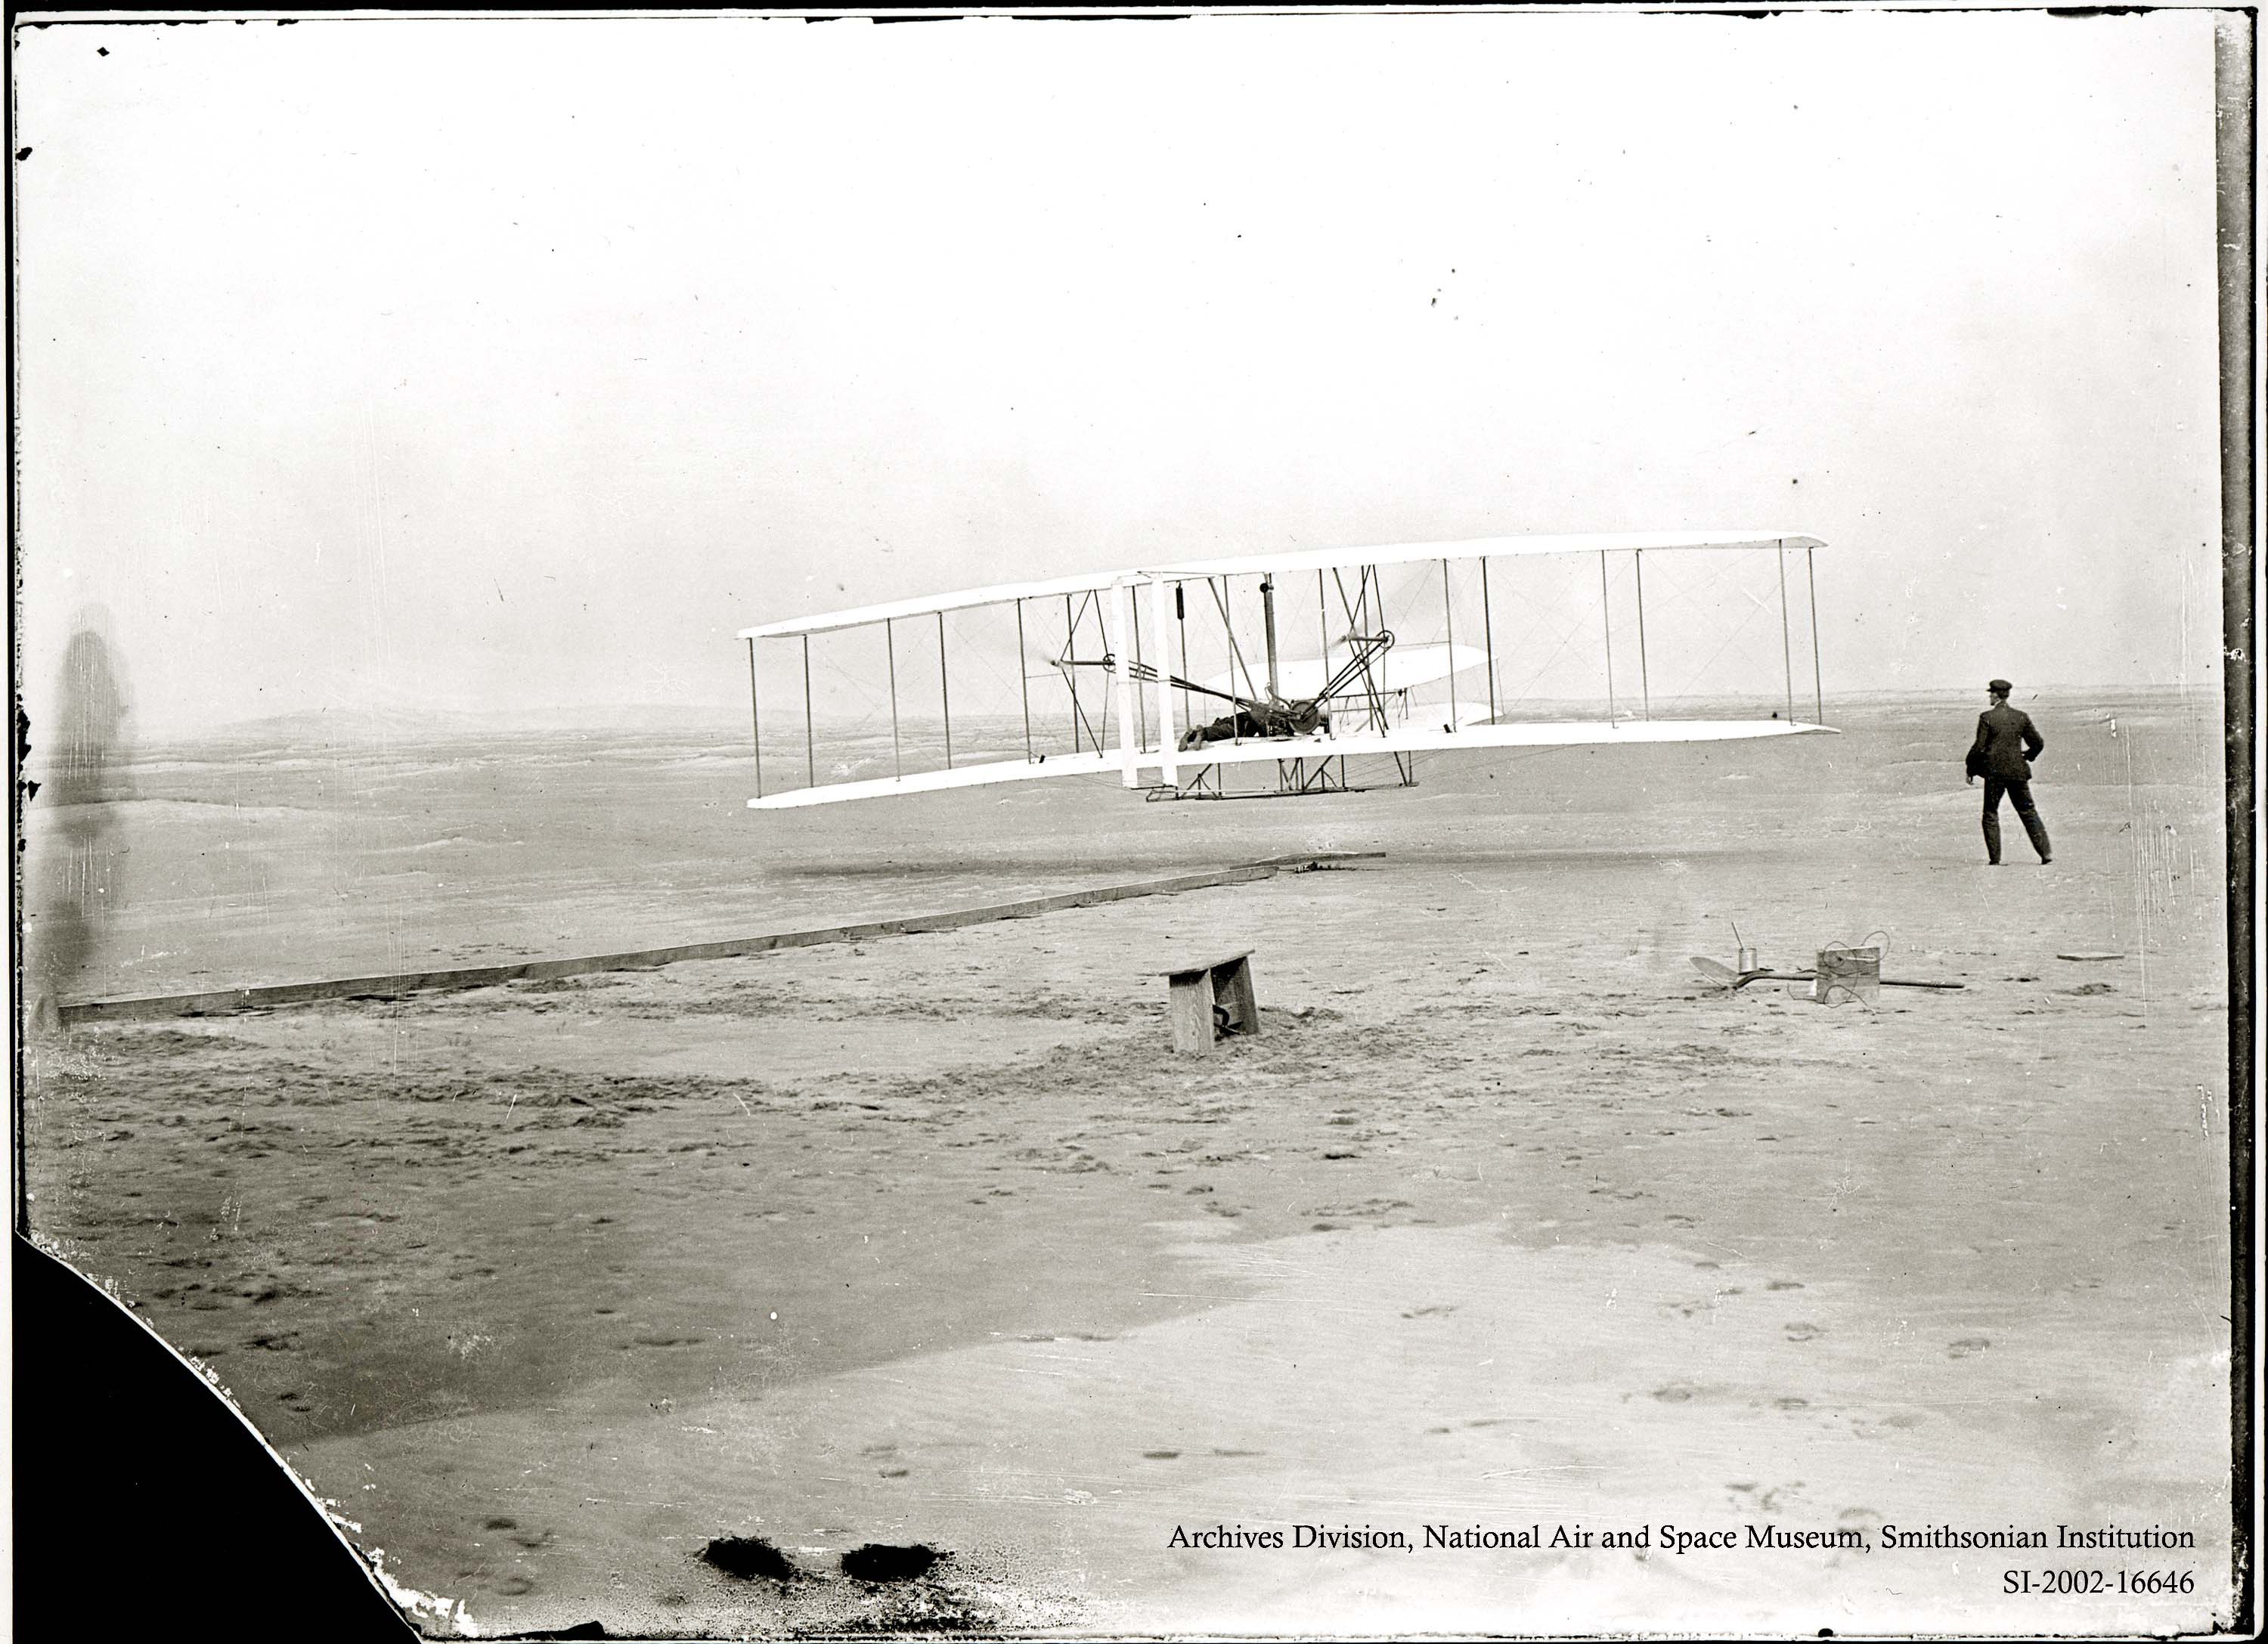 Wright Brothers Flight in air and space curator: the wright brothers were most definitely